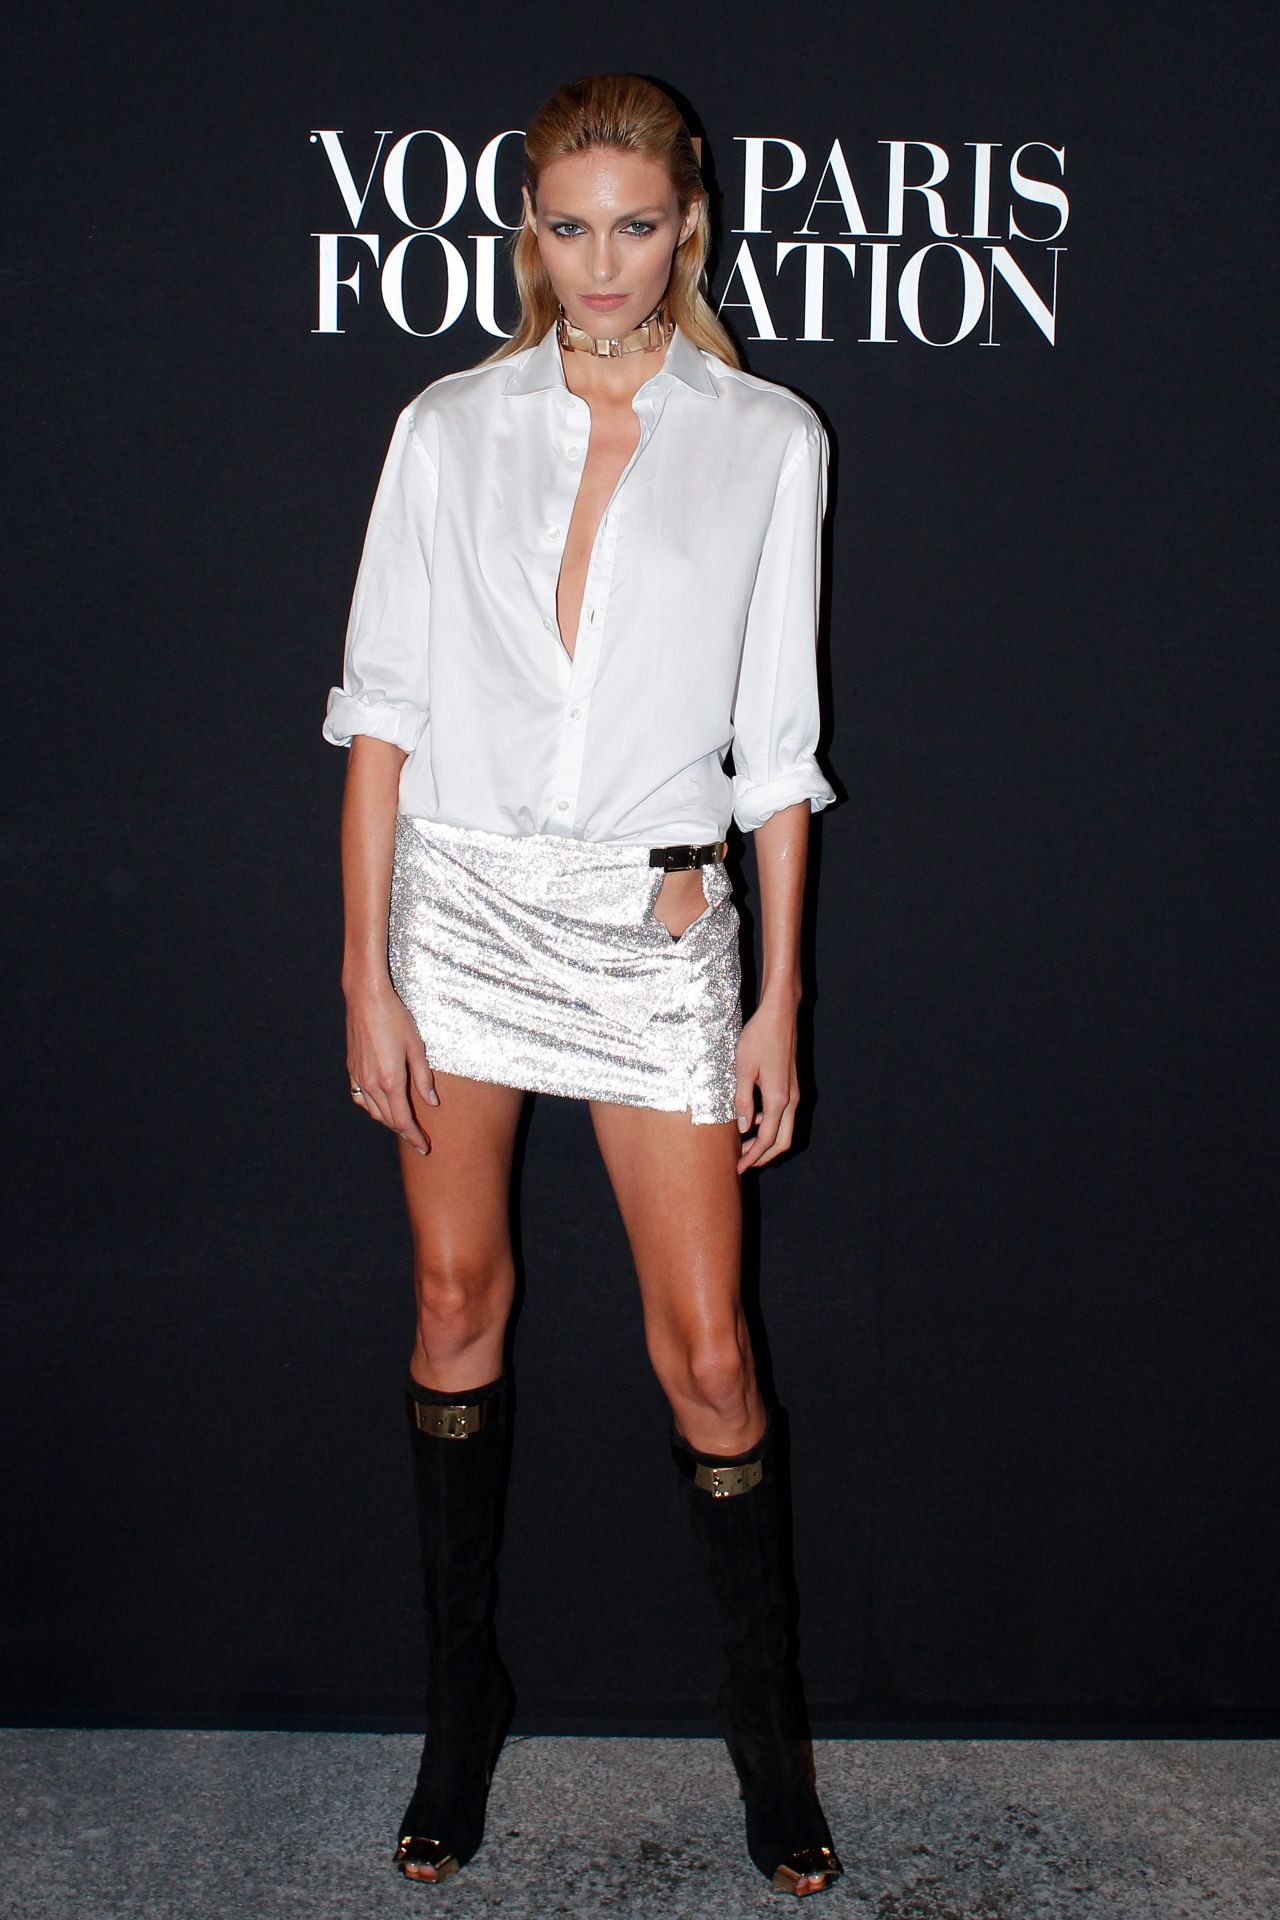 Anja Rubik at Vogue Foundation Gala - July 2014